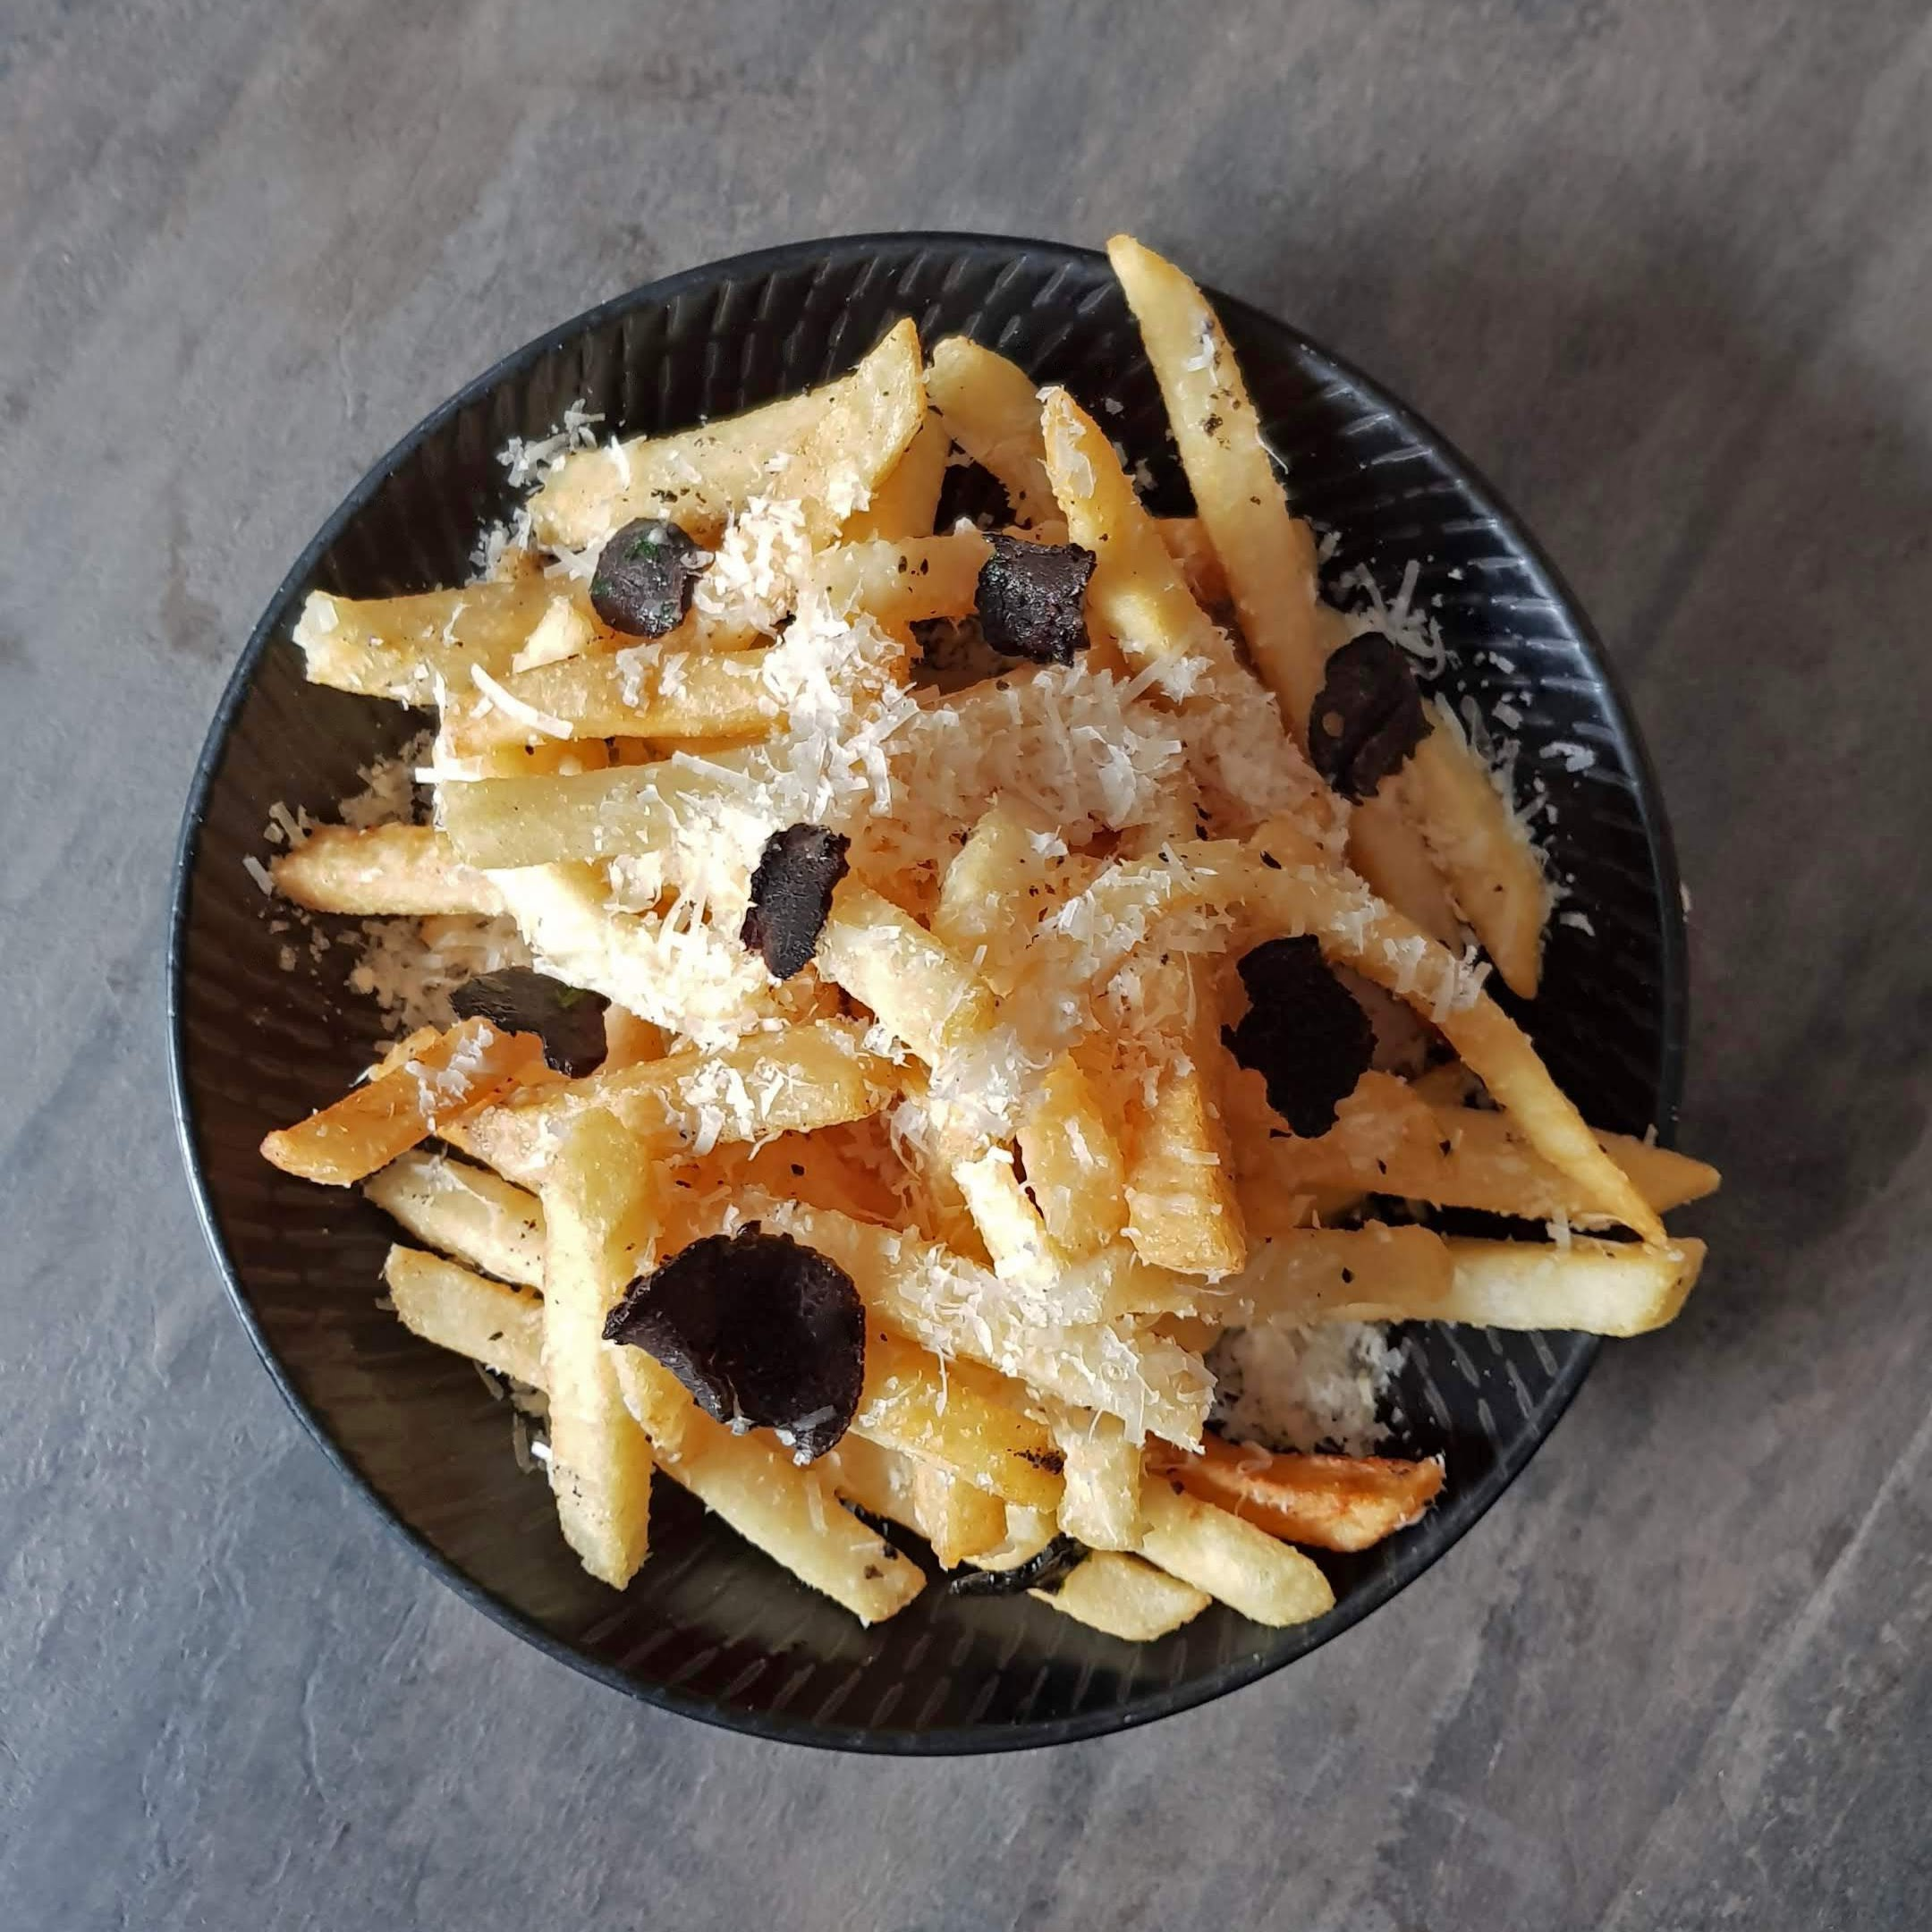 FREE TRUFFLE FRIES - Many say we have some of the best Truffle Fries in Singapore